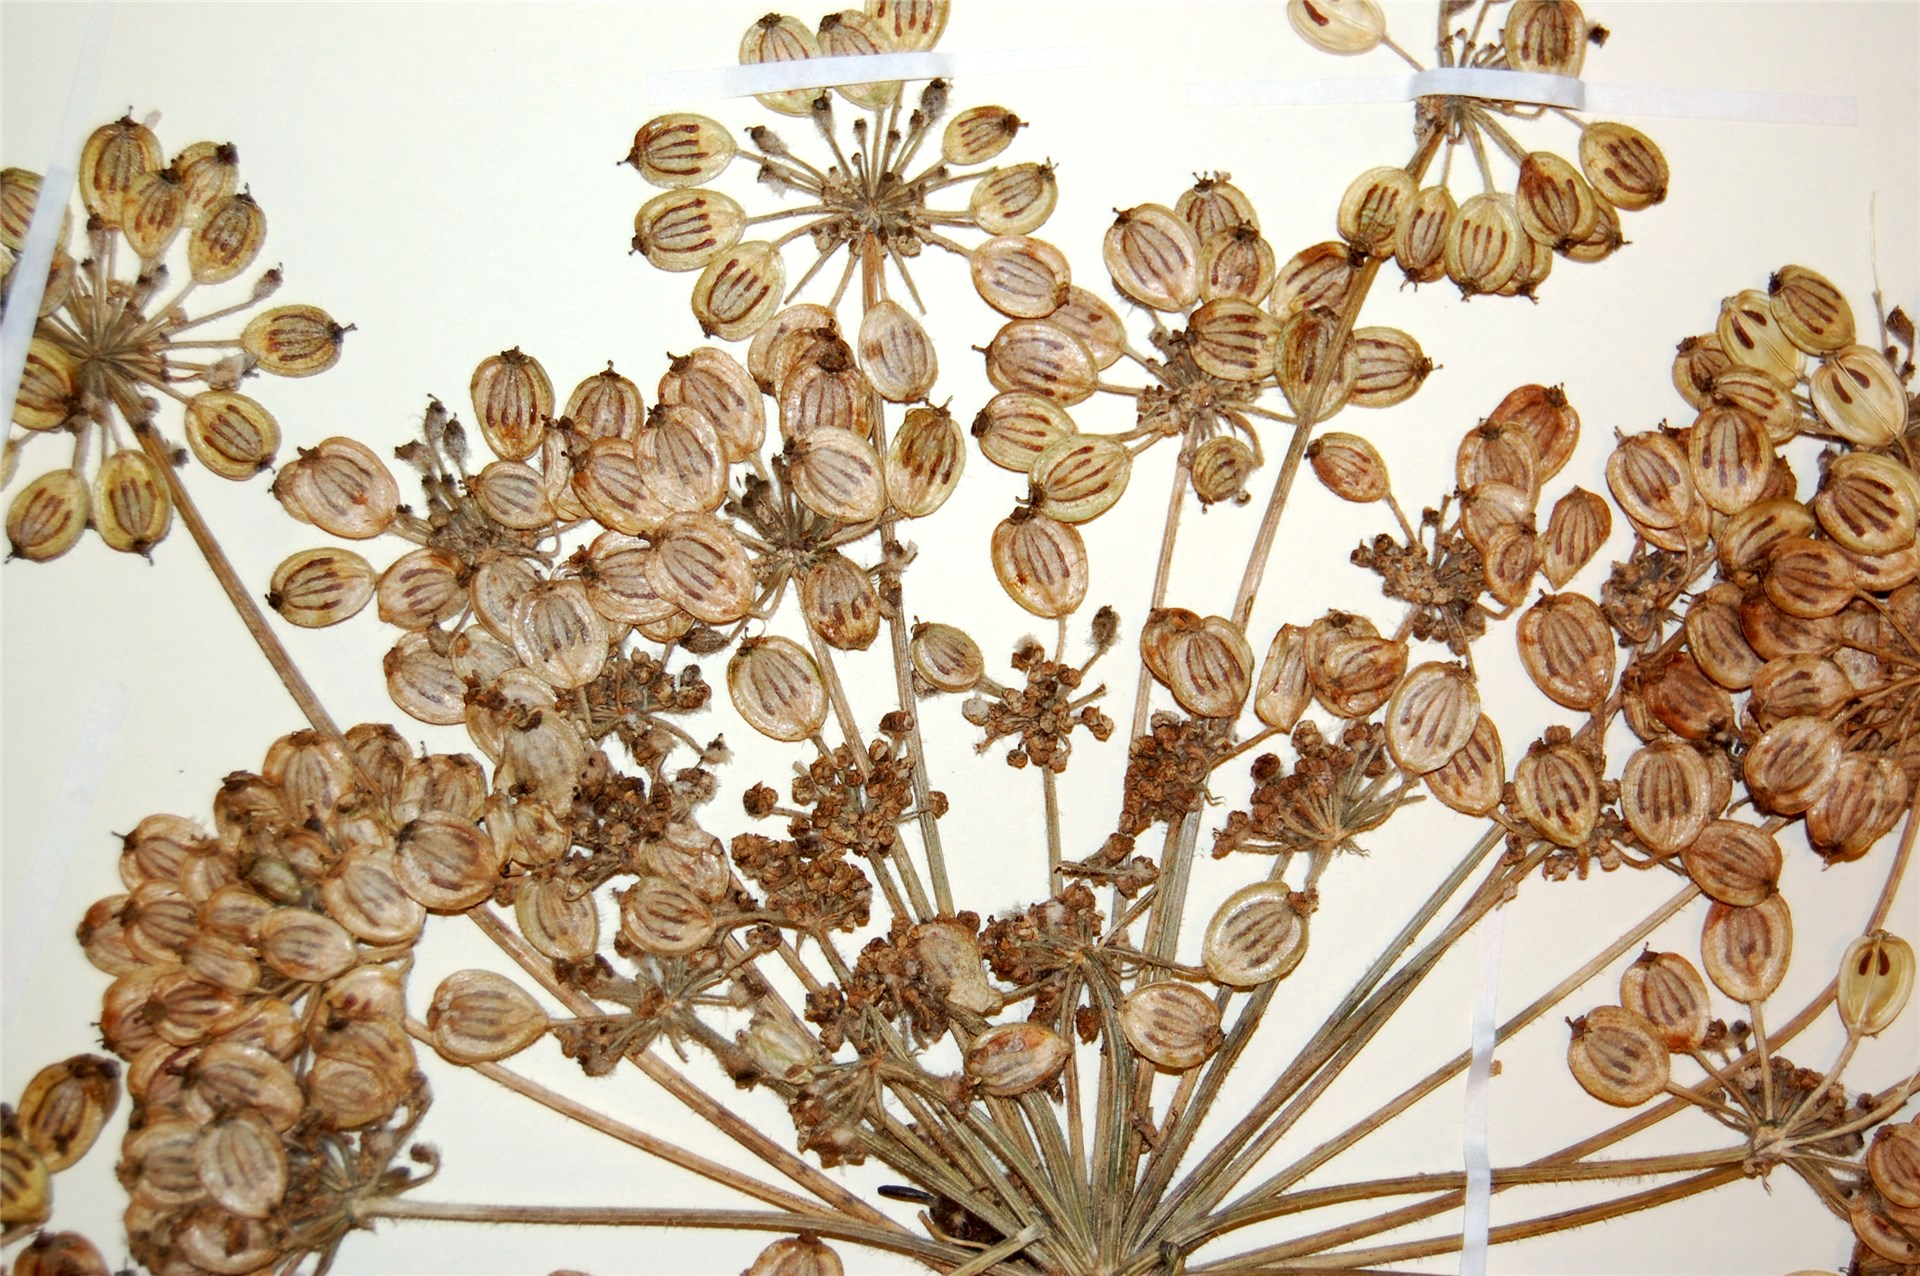 Heracleum persicum (Persian hogweed); seed morphology, herbarium specimen. Norway. June, 2012.